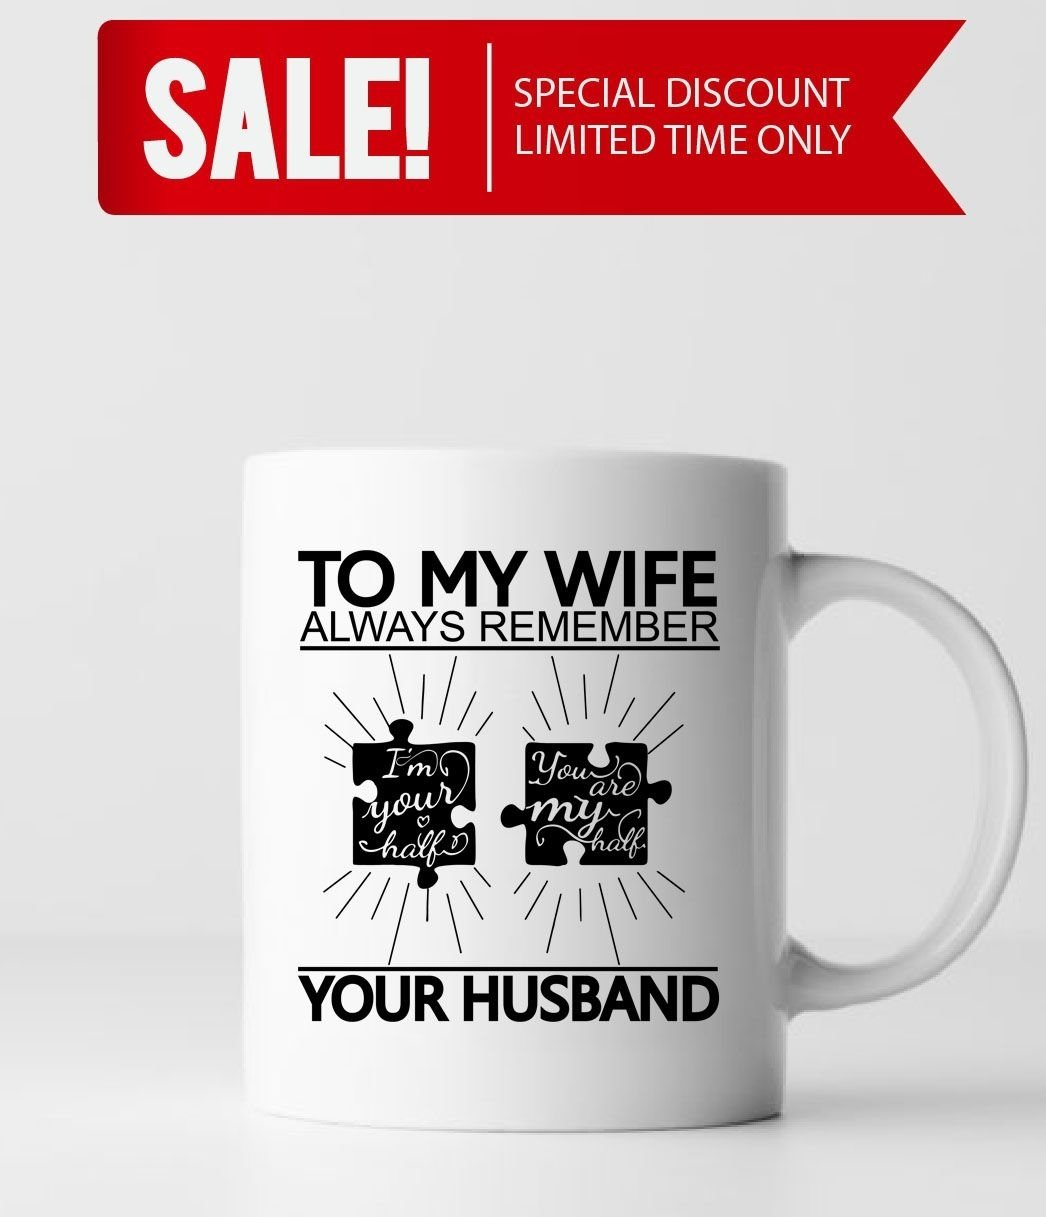 10 Beautiful Birthday Ideas For Your Wife to my wife you are my half wife gift ideas wife gifts wife 1 2020